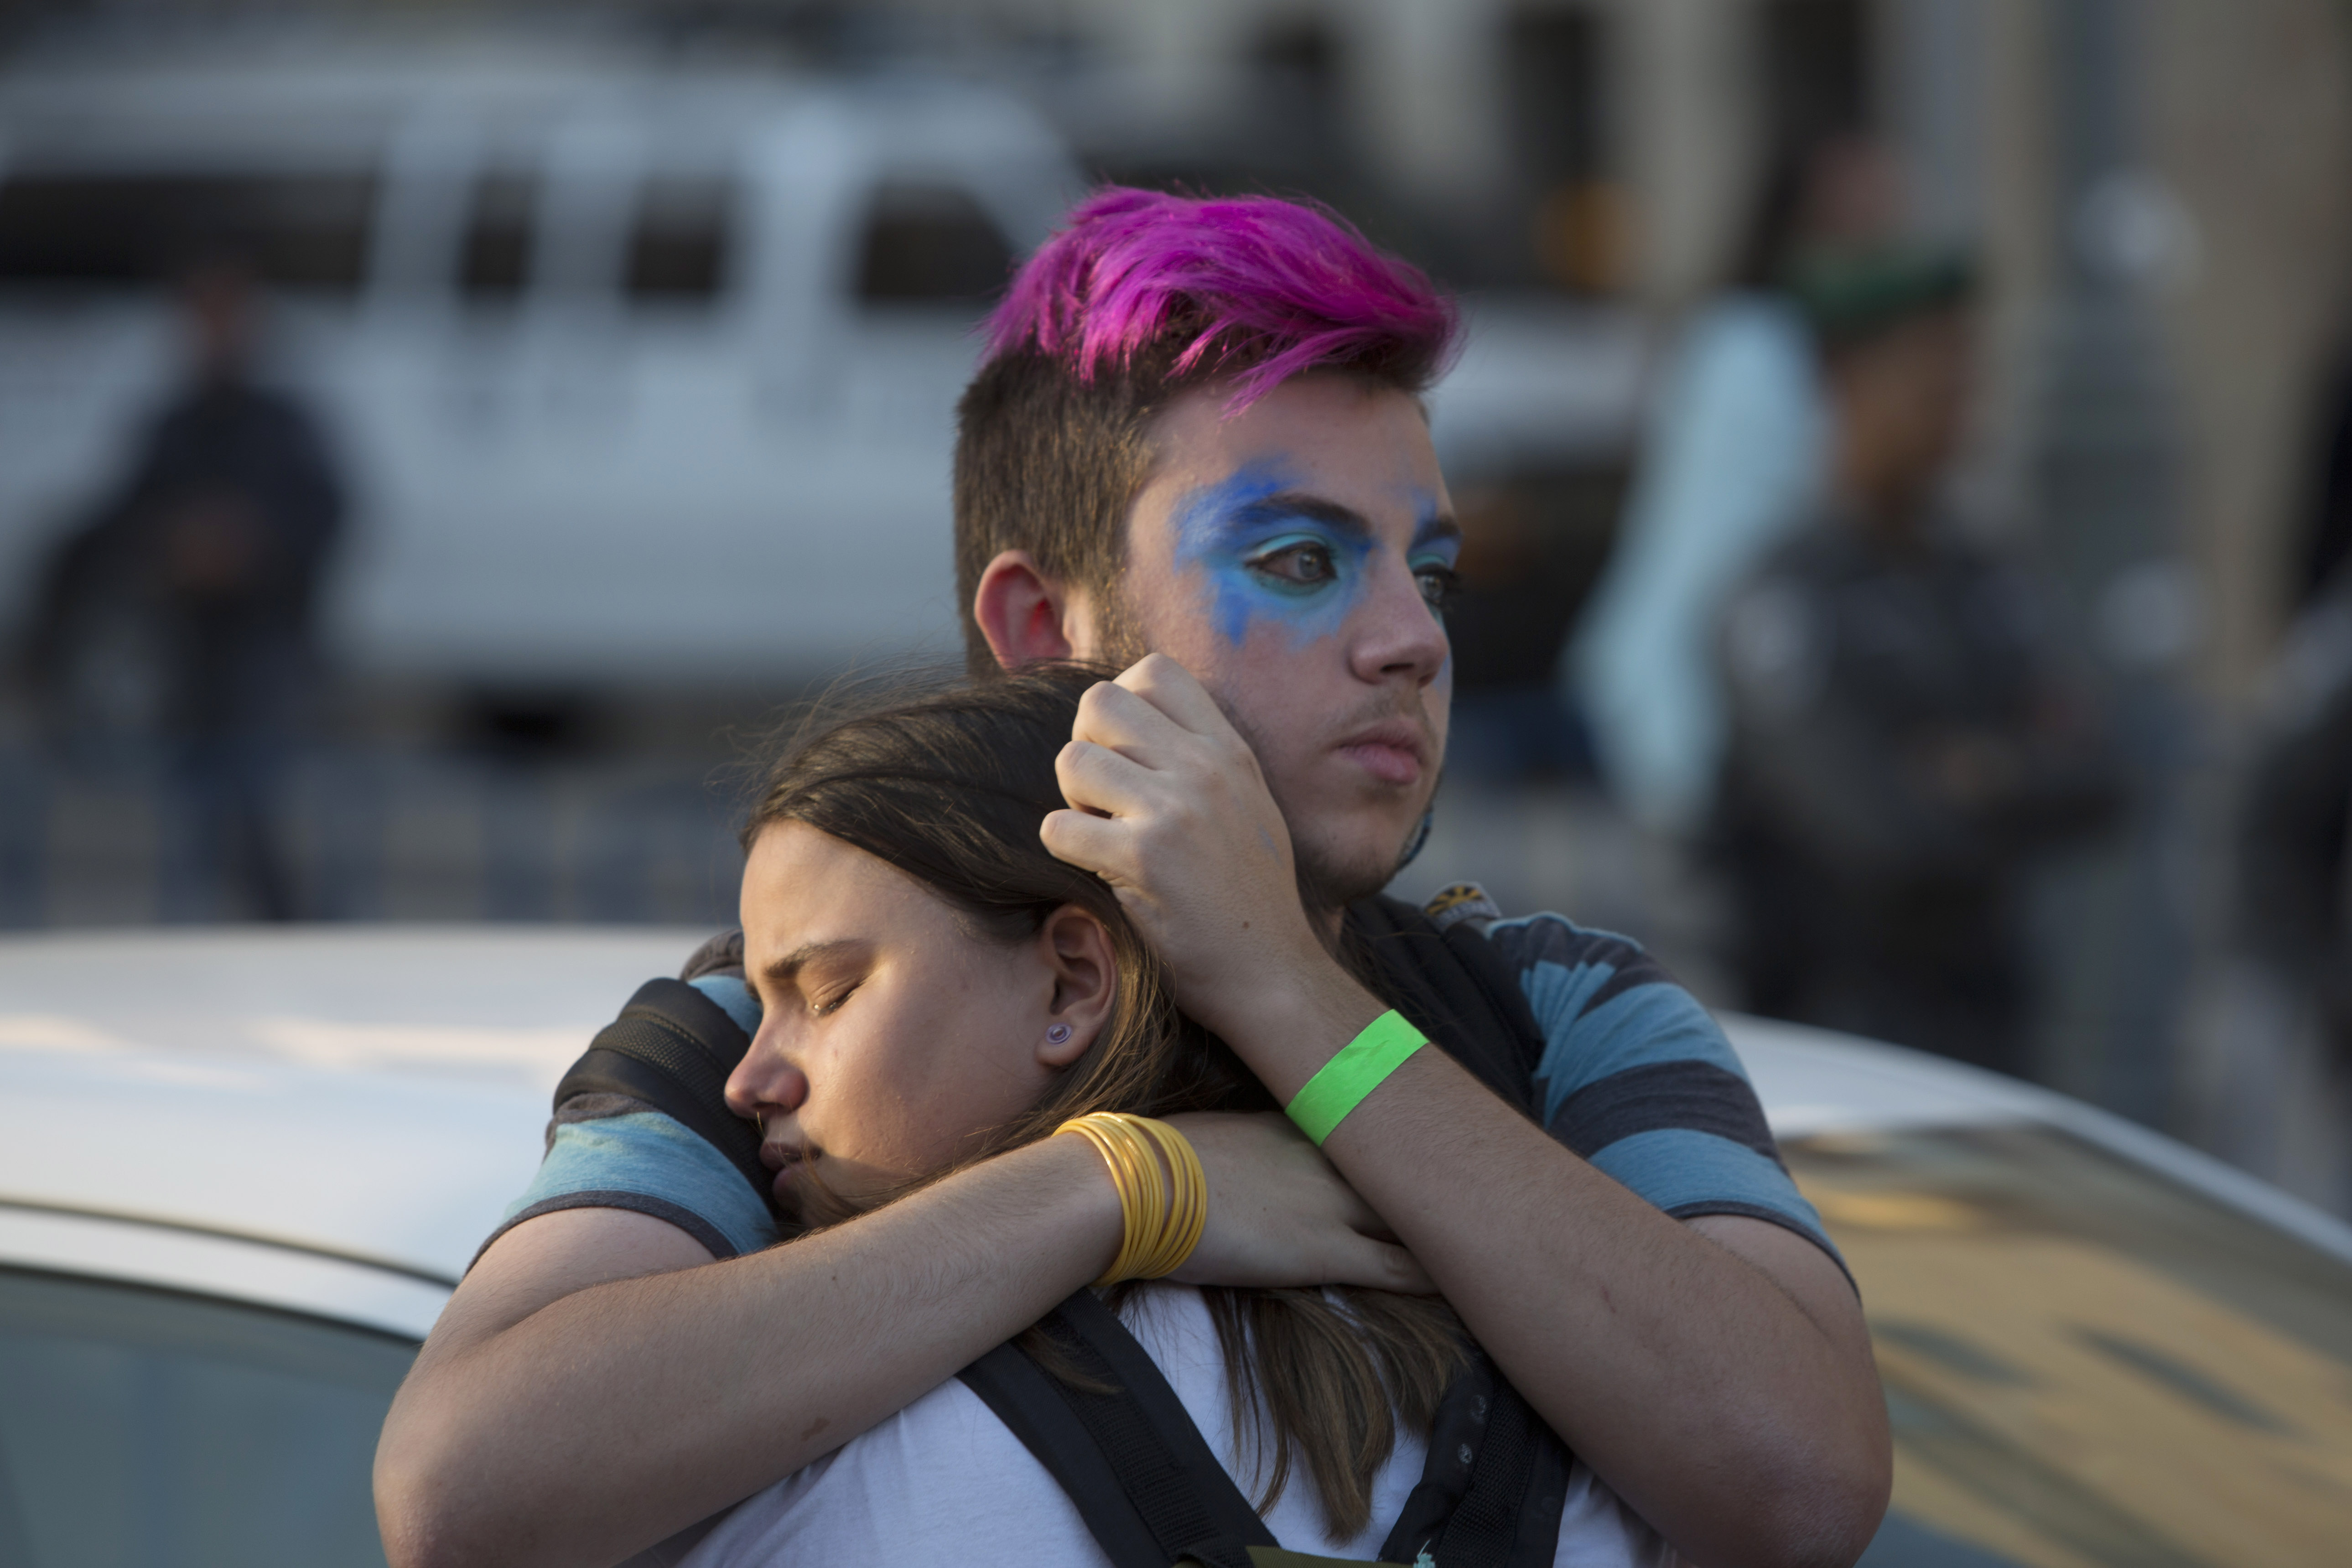 People react after an ultra-Orthodox Jew attacked people with a knife during a Gay Pride parade Thursday, July 30, 2015 in central Jerusalem. Israeli police said several people were stabbed. (AP Photo/Sebastian Scheiner)